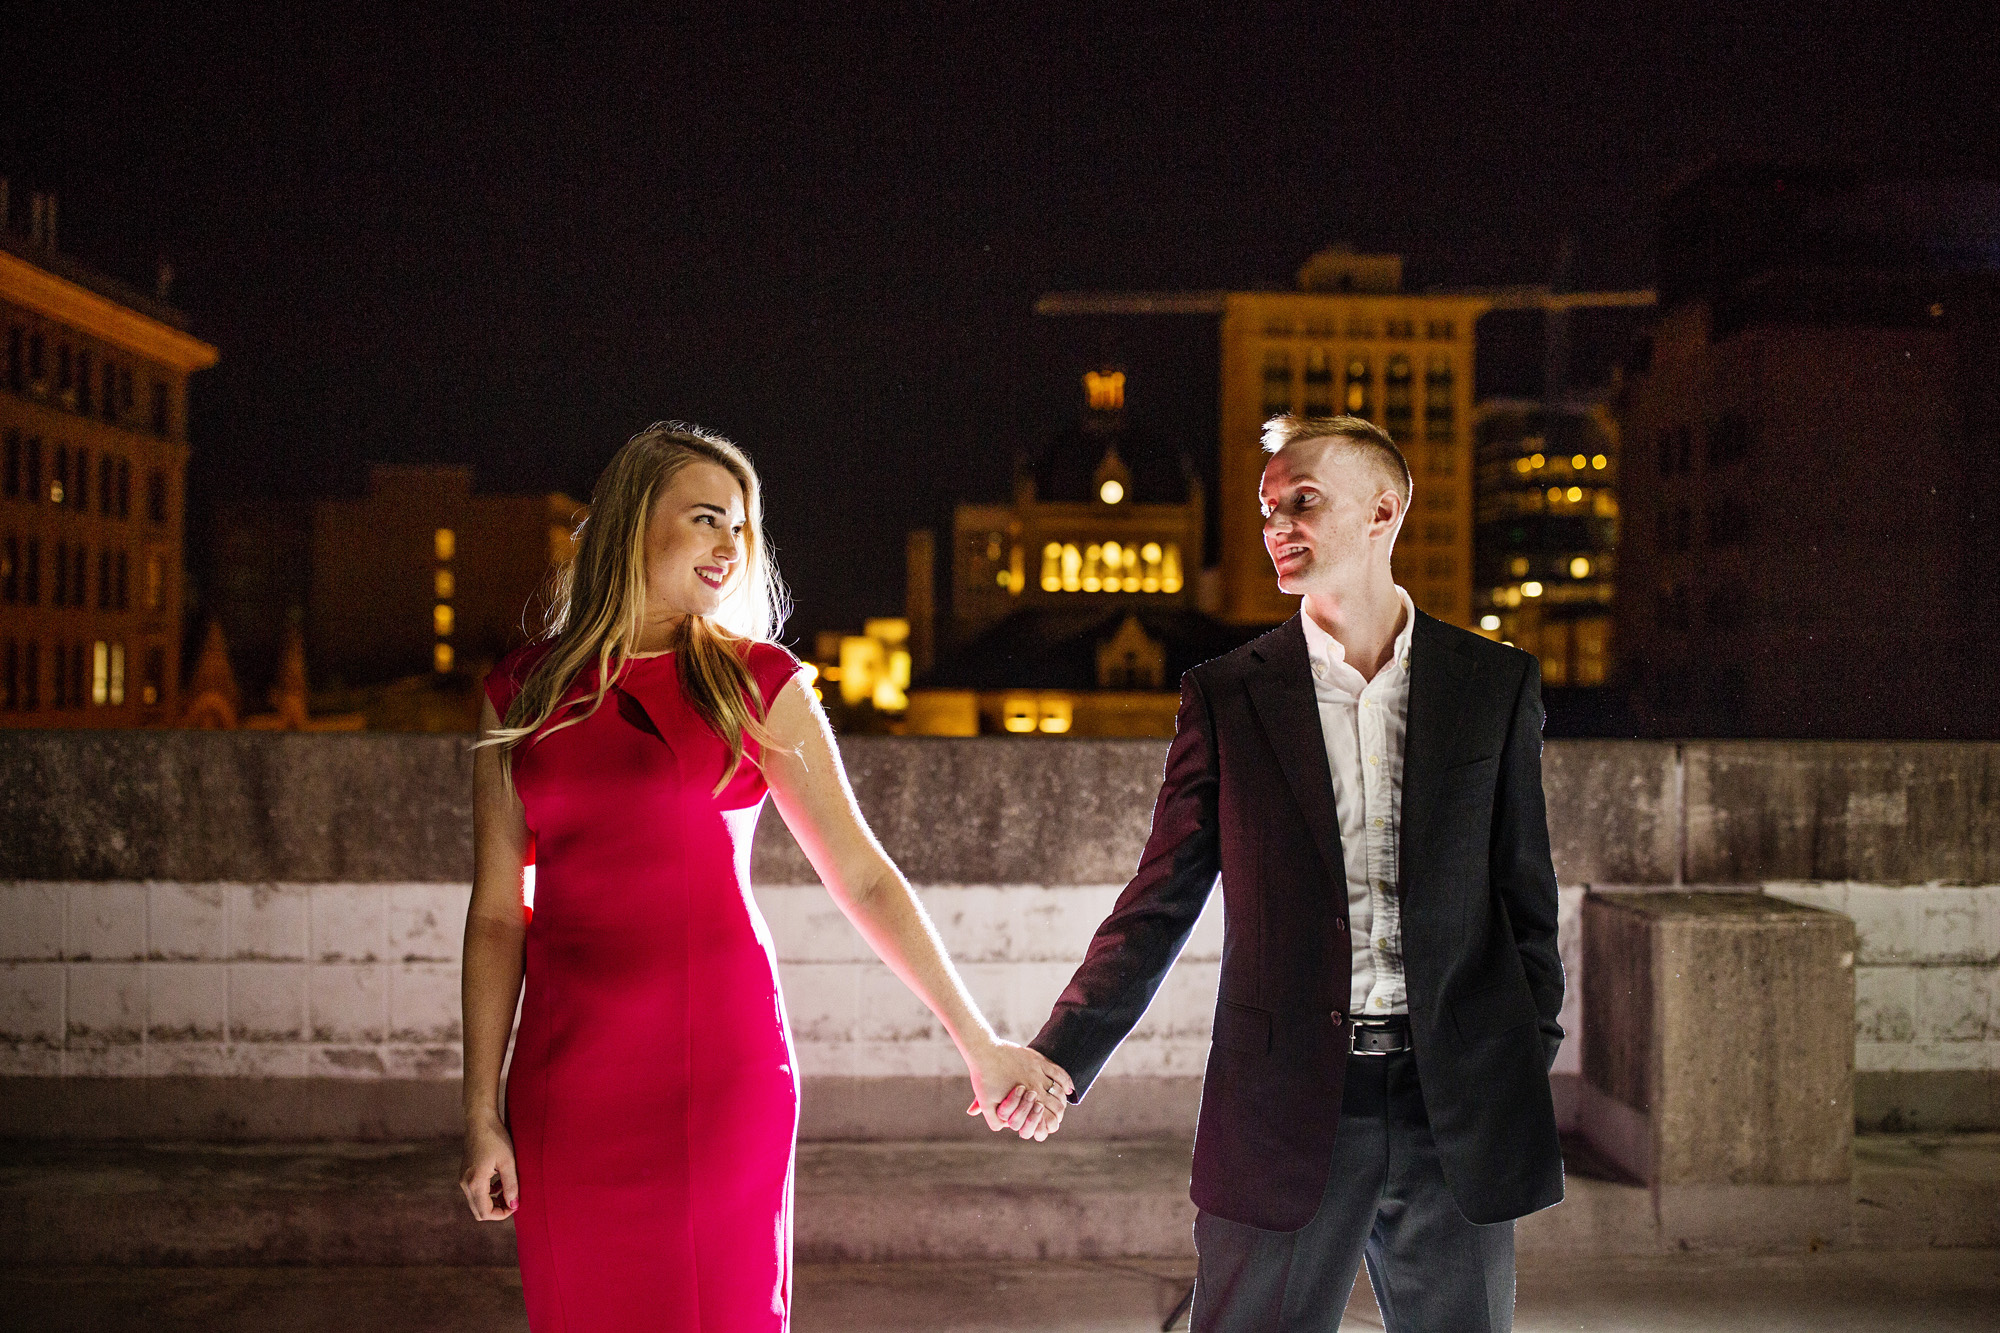 Seriously_Sabrina_Photography_Lexington_Kentucky_Transylvania_Burl_Distillery_District_Downtown_Engagement_JJ_52.jpg